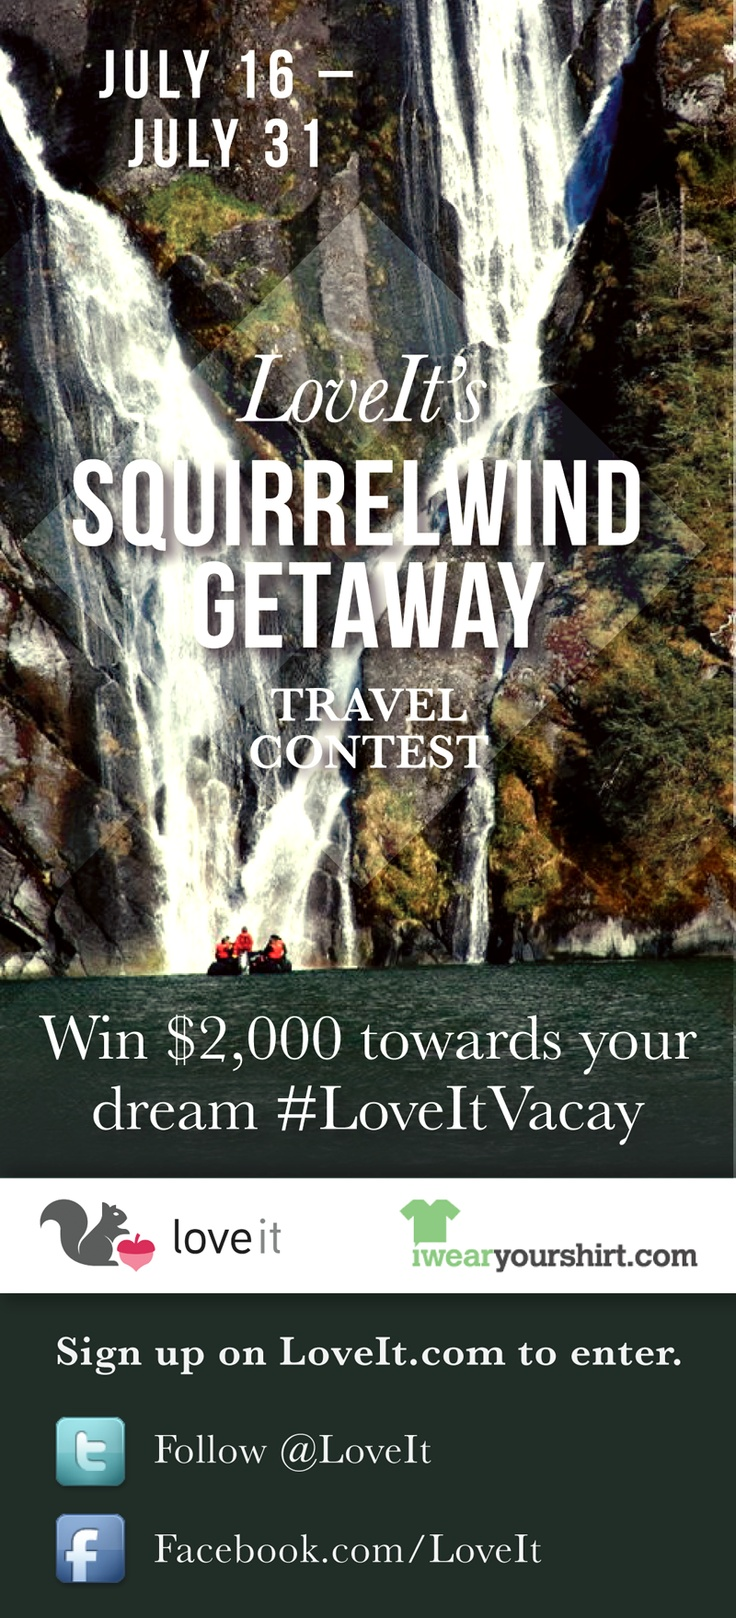 Win $2k towards your dream vacation!  How to Enter  1.) Sign up for LoveIt.com  2.) Create a public collection - Be creative. Name it what you want but include the hashtag #LoveItVacay   3.) Categorize it under Travel  4.) Love a min 12 images as it relates to your desired destination spot  5.) Follow @LoveIt on Twitter   6.) When your collection is ready, tweet the link to @loveit using hashtag #LoveItVacay        or   Like LoveIt on Facebook & post collection link on LoveIt Facebook wall.Post Collection, Dreams Vacations, Loveit Com Contest, Dream Vacations, Destinations Spots, Collection Link, Facebook Wall, Hashtag Loveitvacay, Desire Destinations